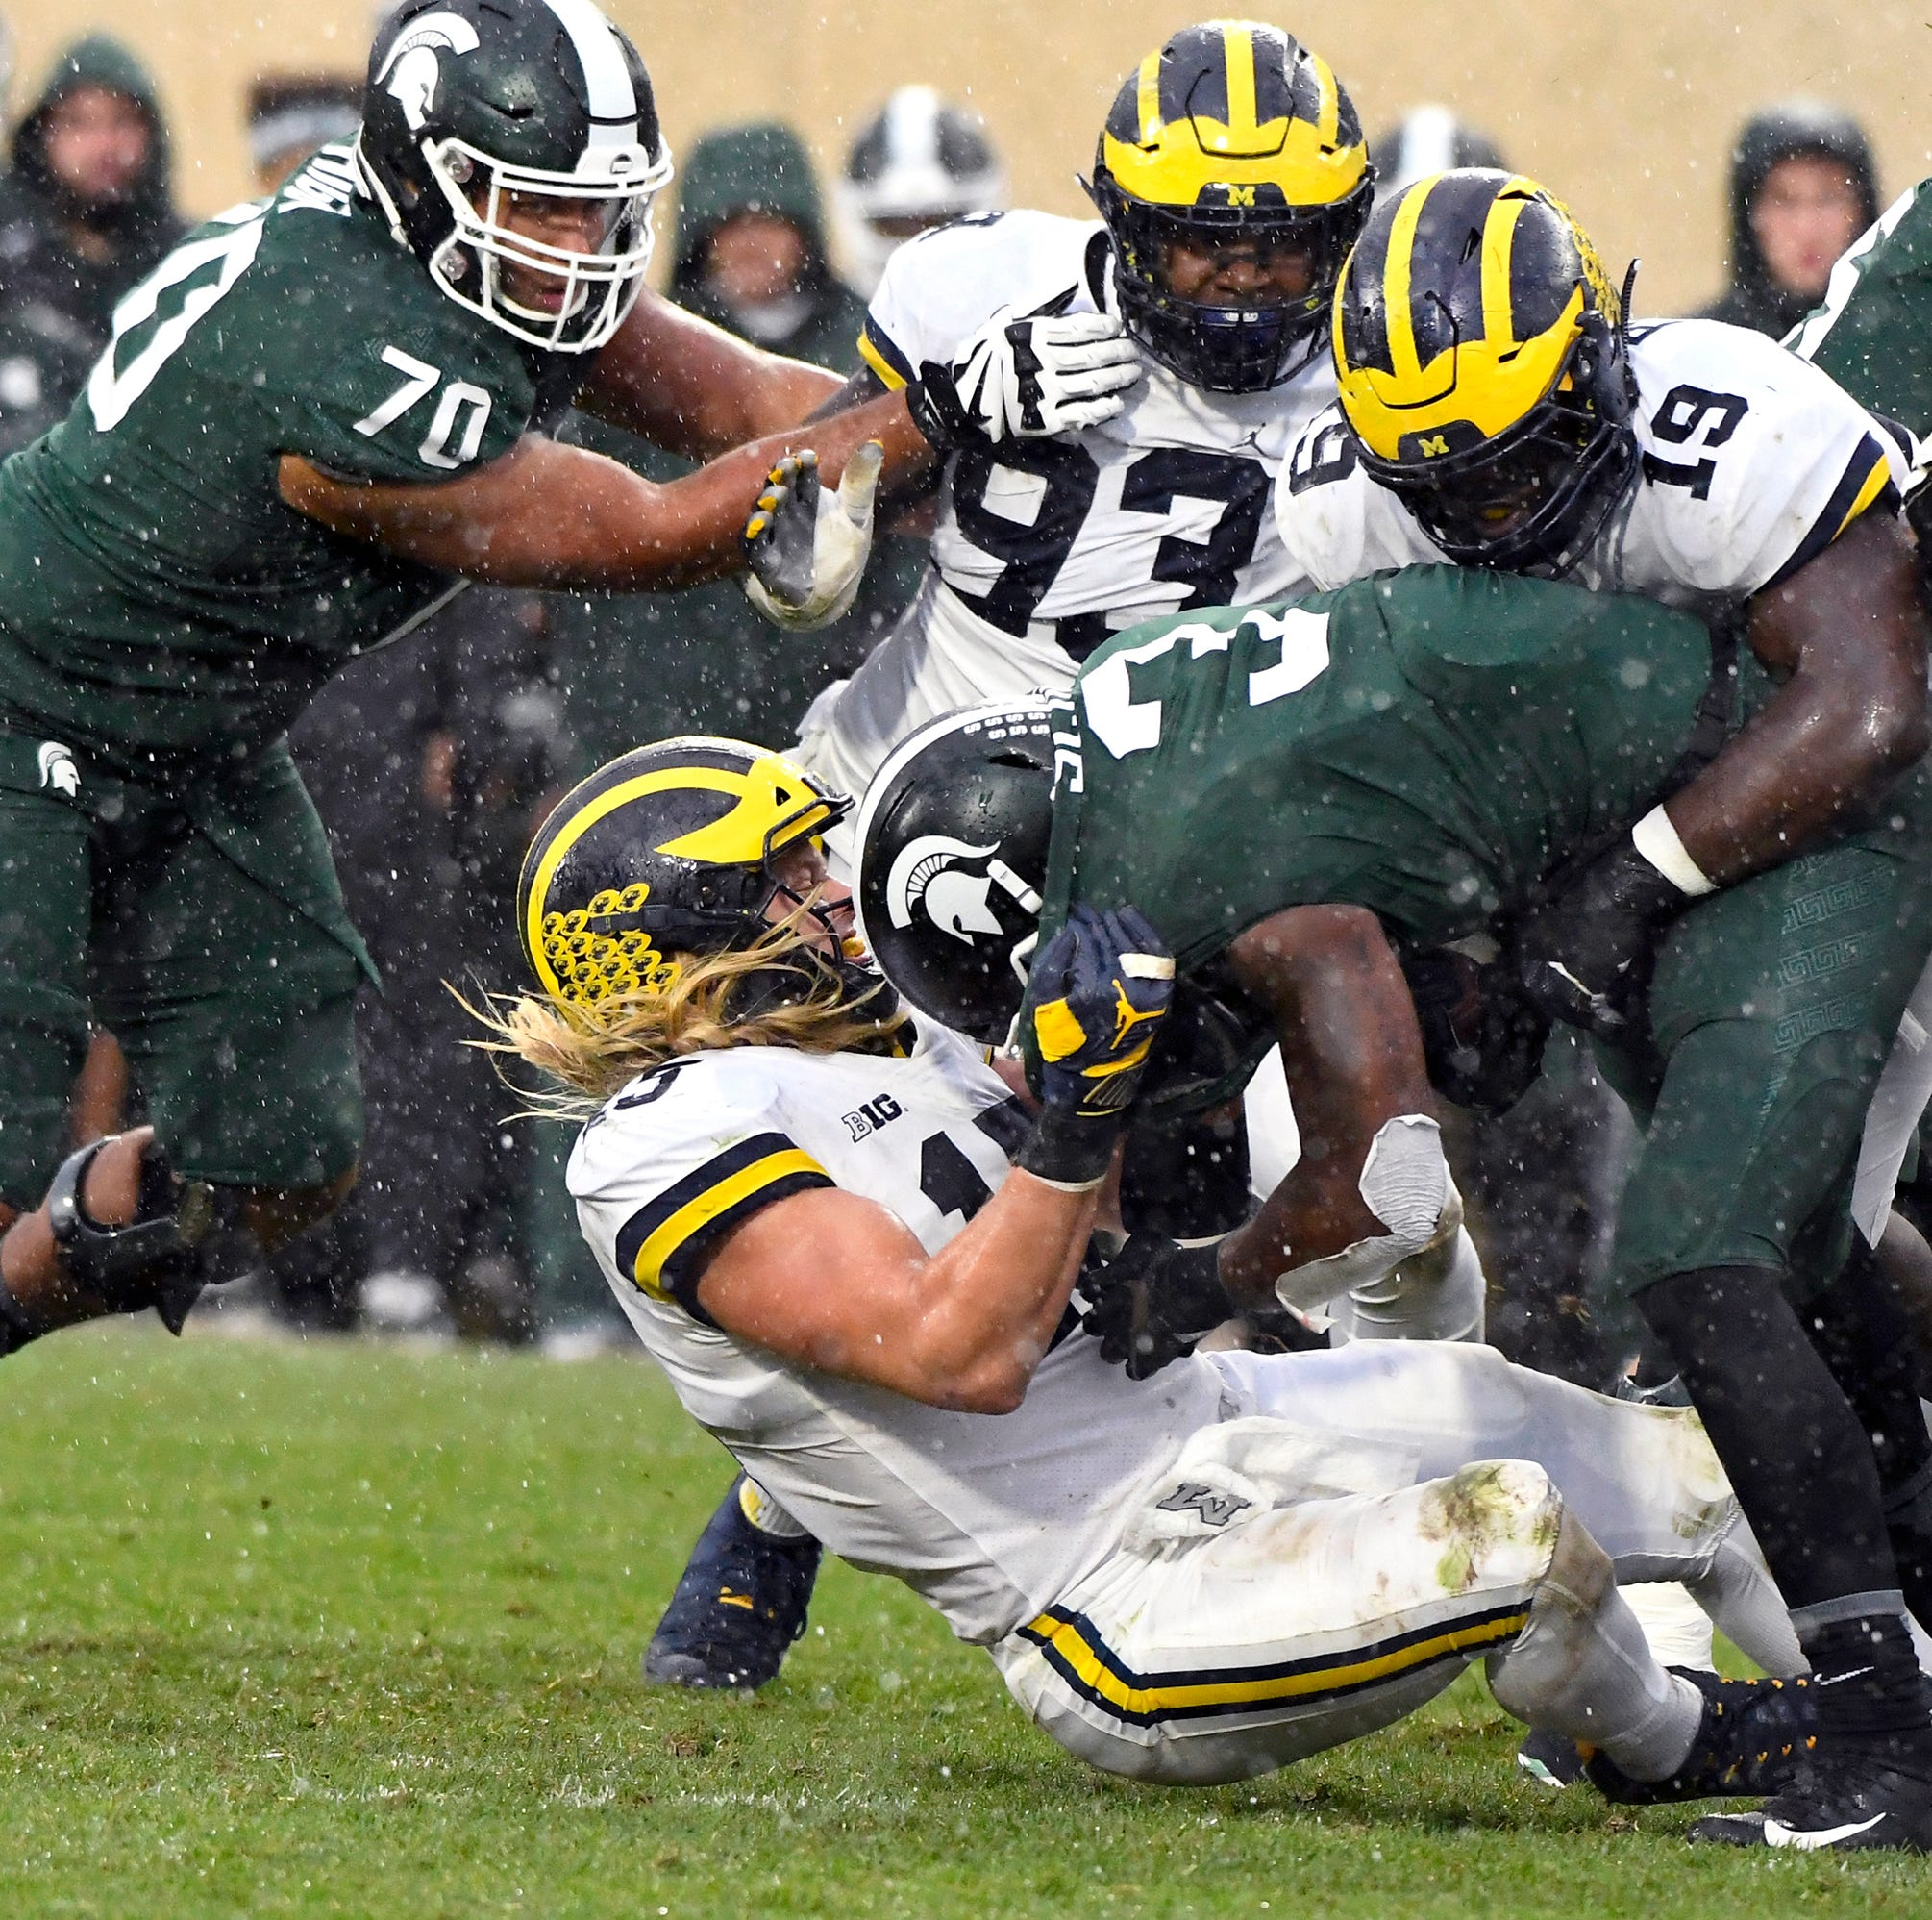 'Nothing they could do': Wolverines stifle Spartans